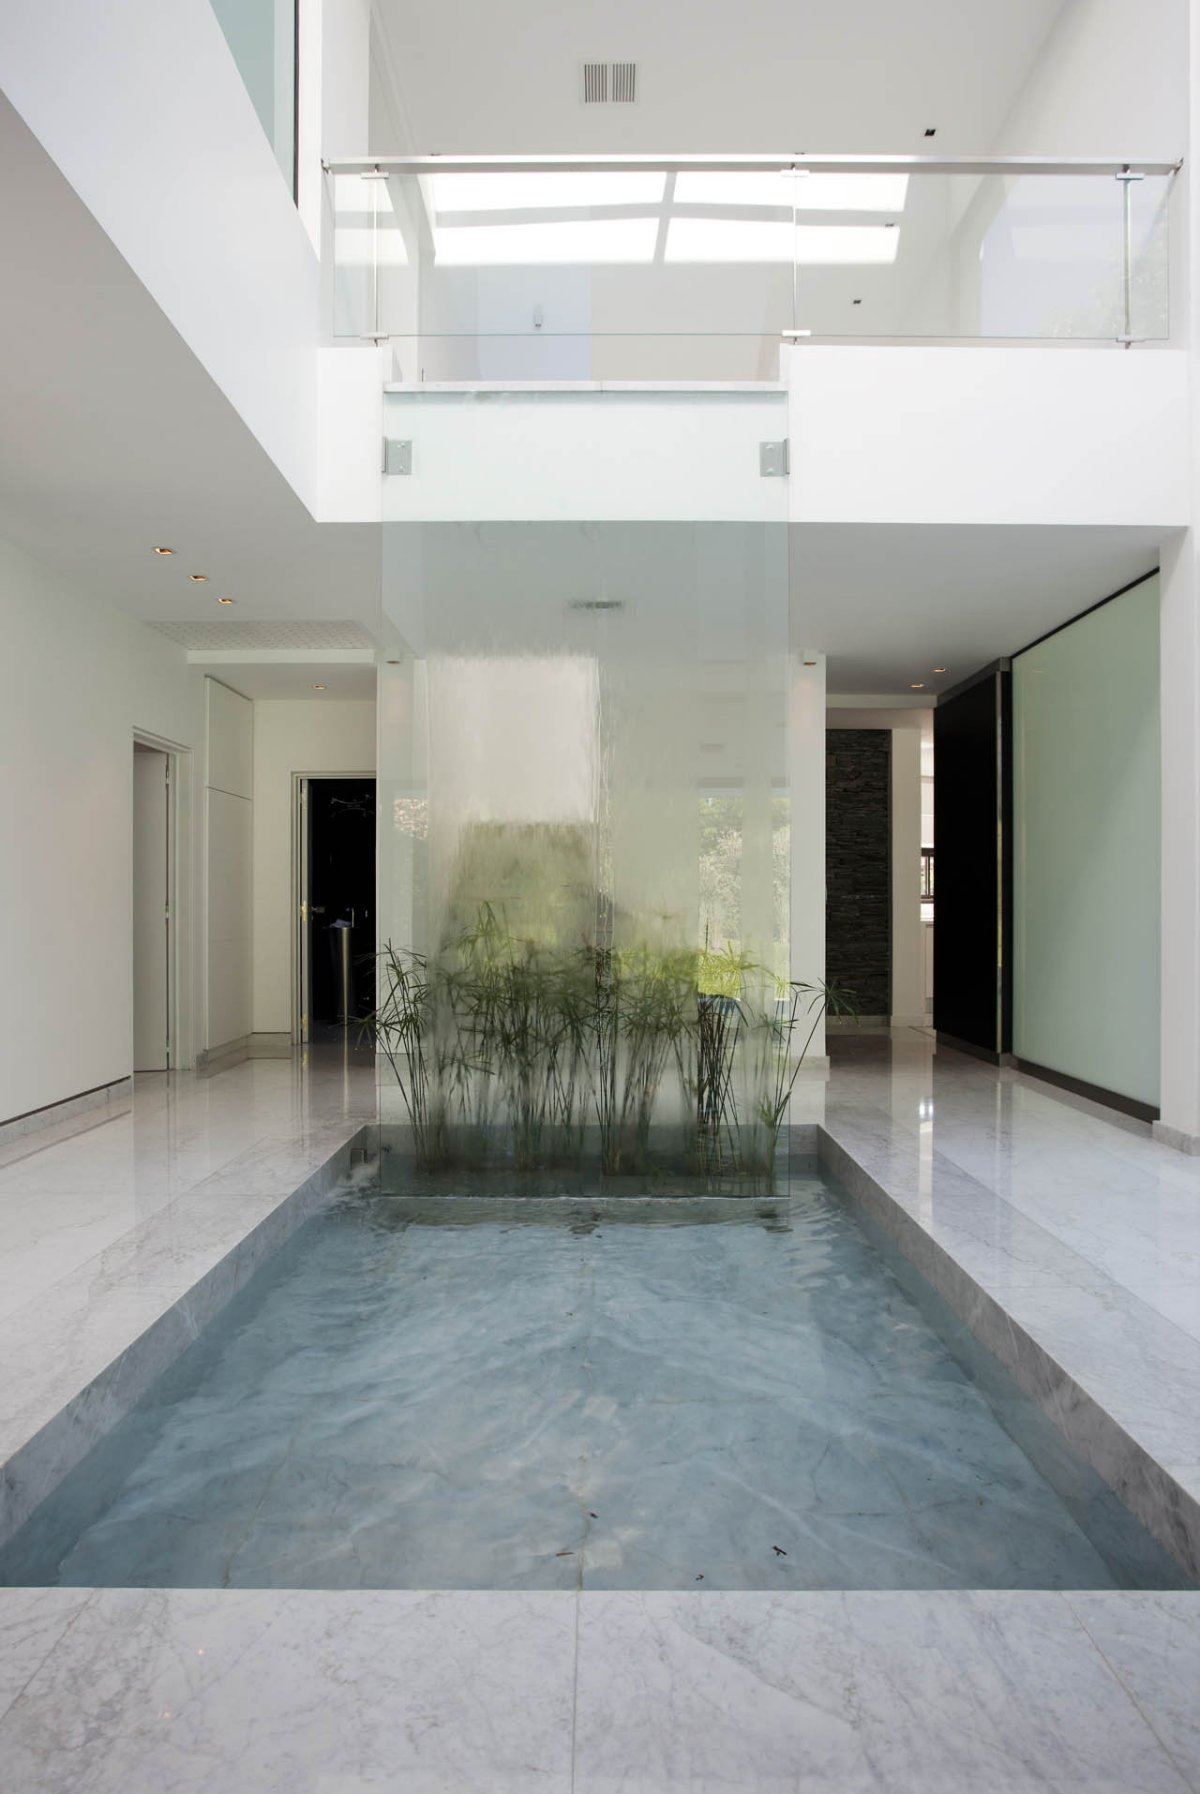 Waterfall, Water Feature, Modern House in Pilar, Buenos Aires